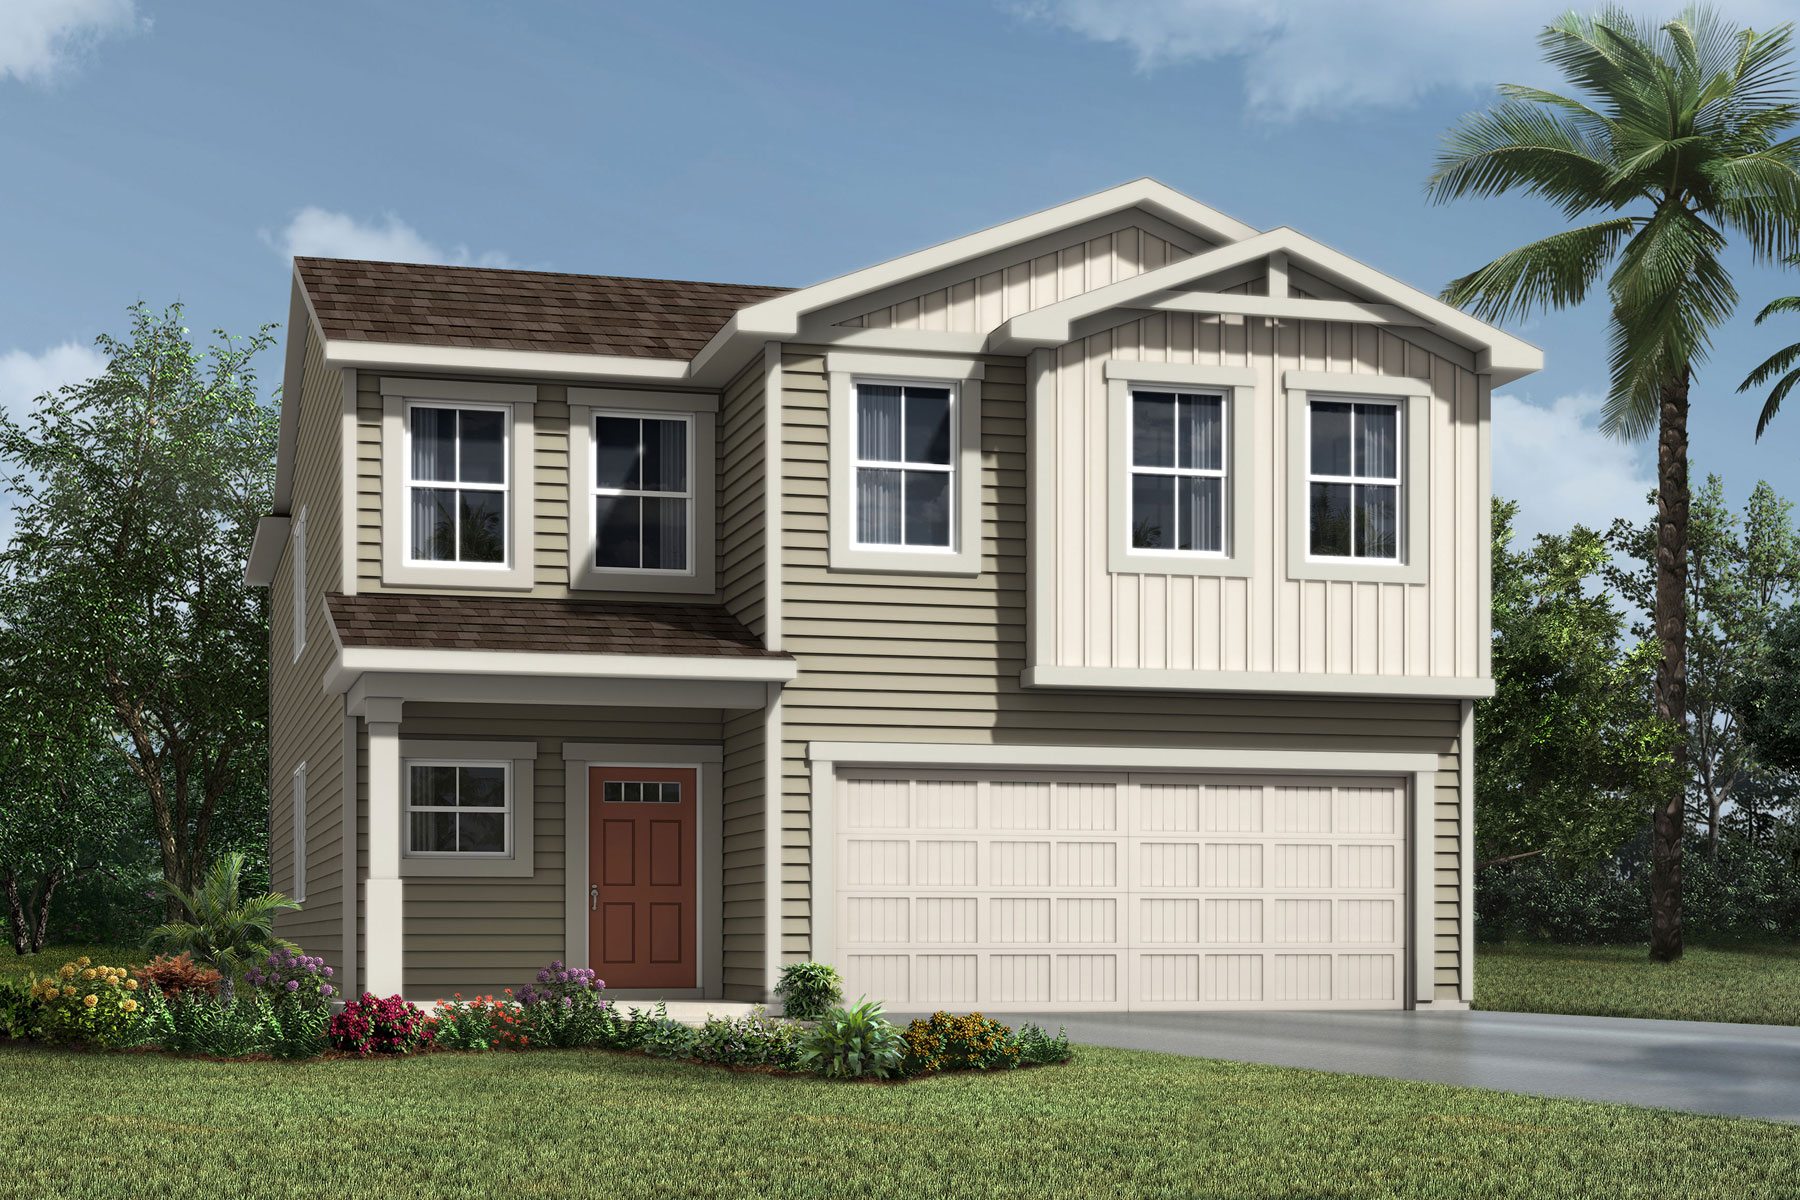 Whitney Plan jax_whitney_farmhouse at RiverTown - Haven in St. Johns Florida by Mattamy Homes